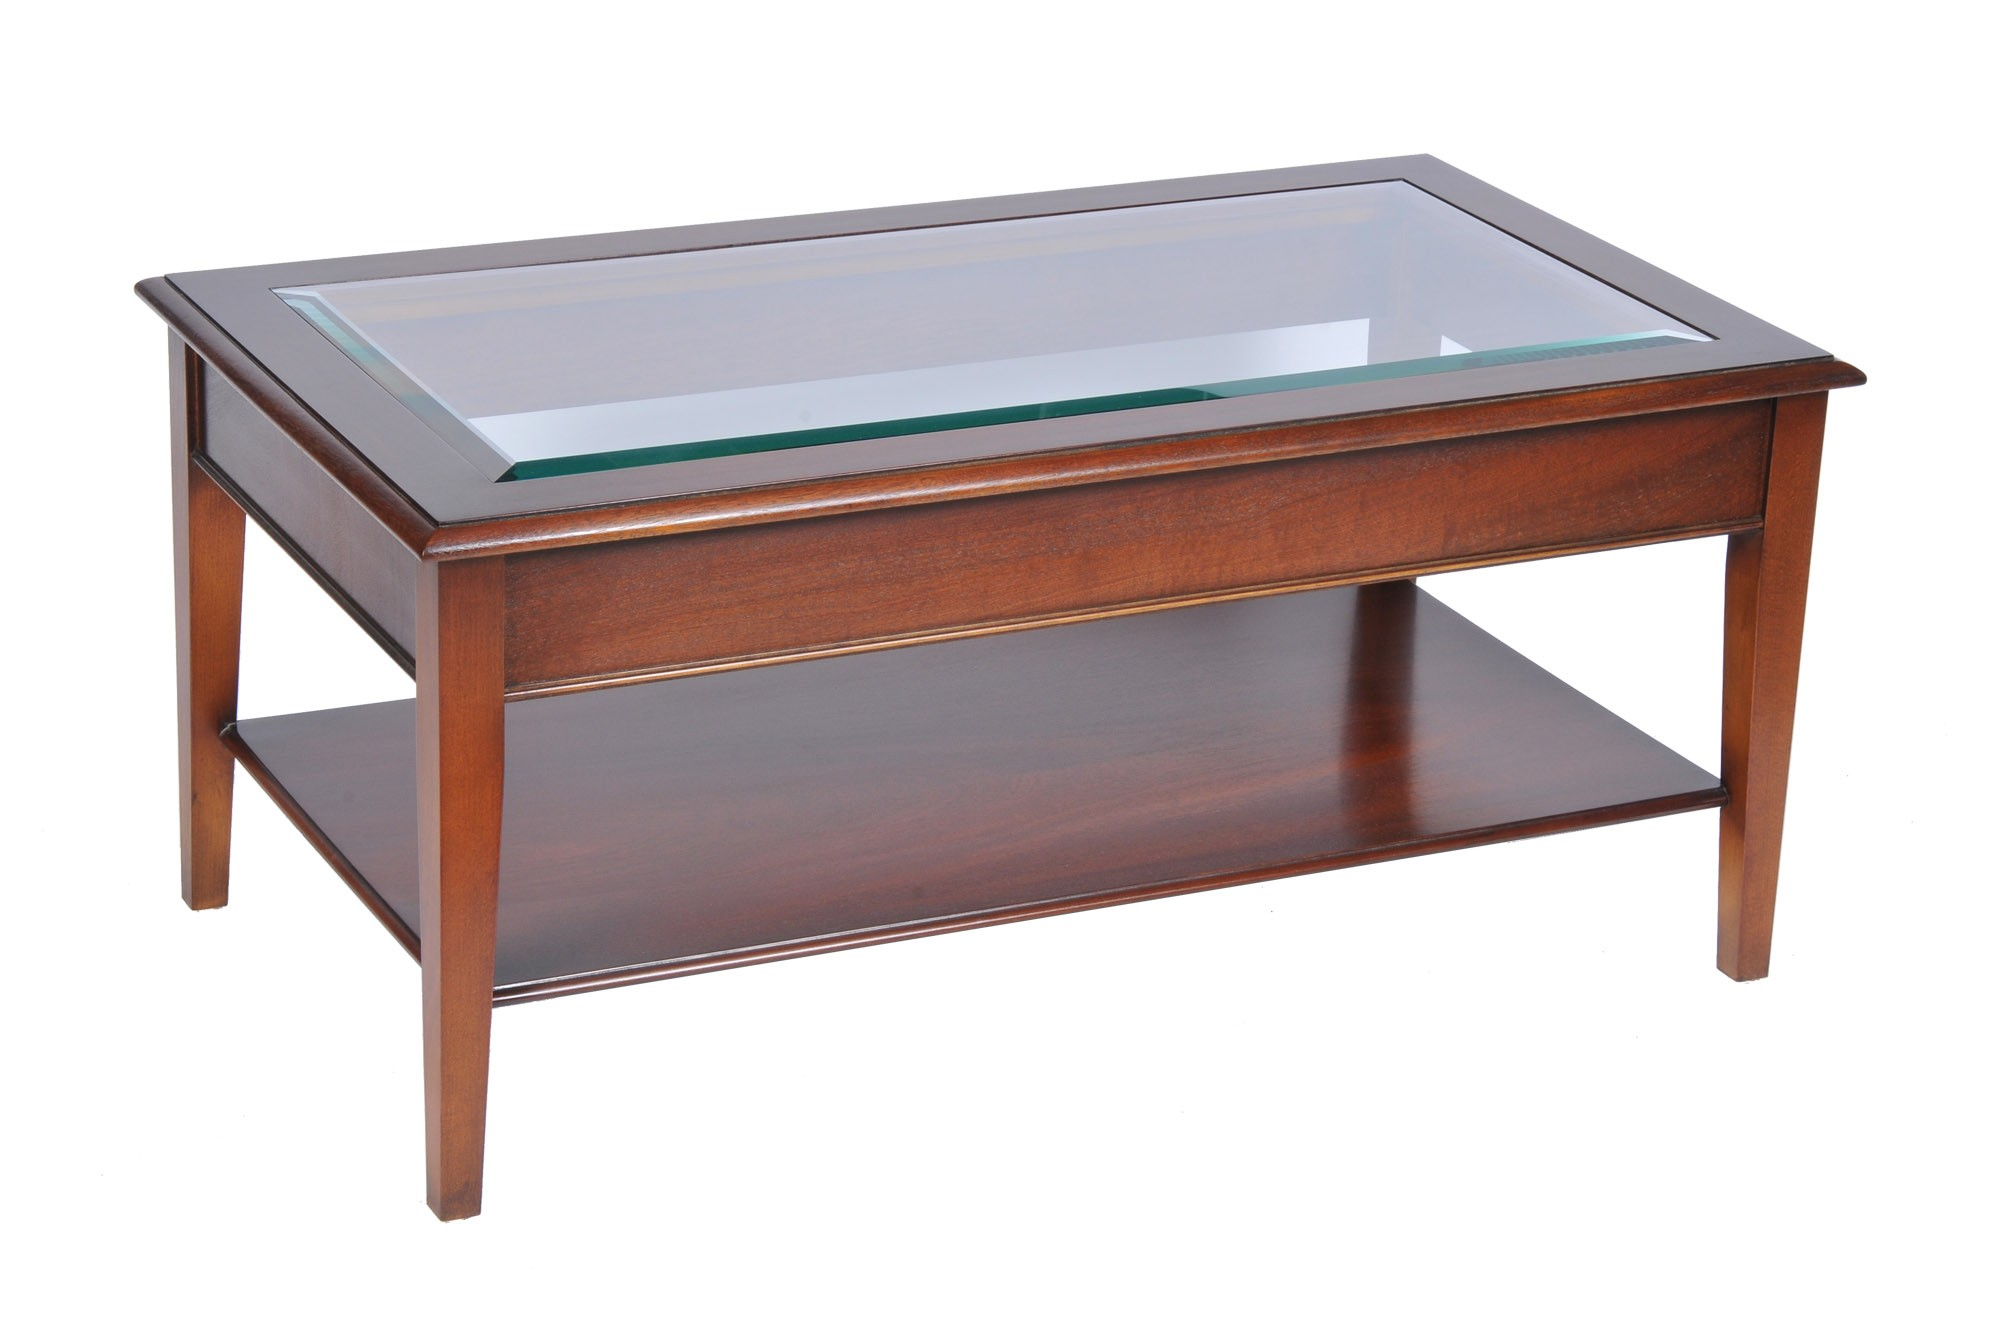 bradley mahogany glass top coffee table hayes furniture wood end with mellow living room white high dining rustic side diy montreal riverside bay cliff folding patio blueprint